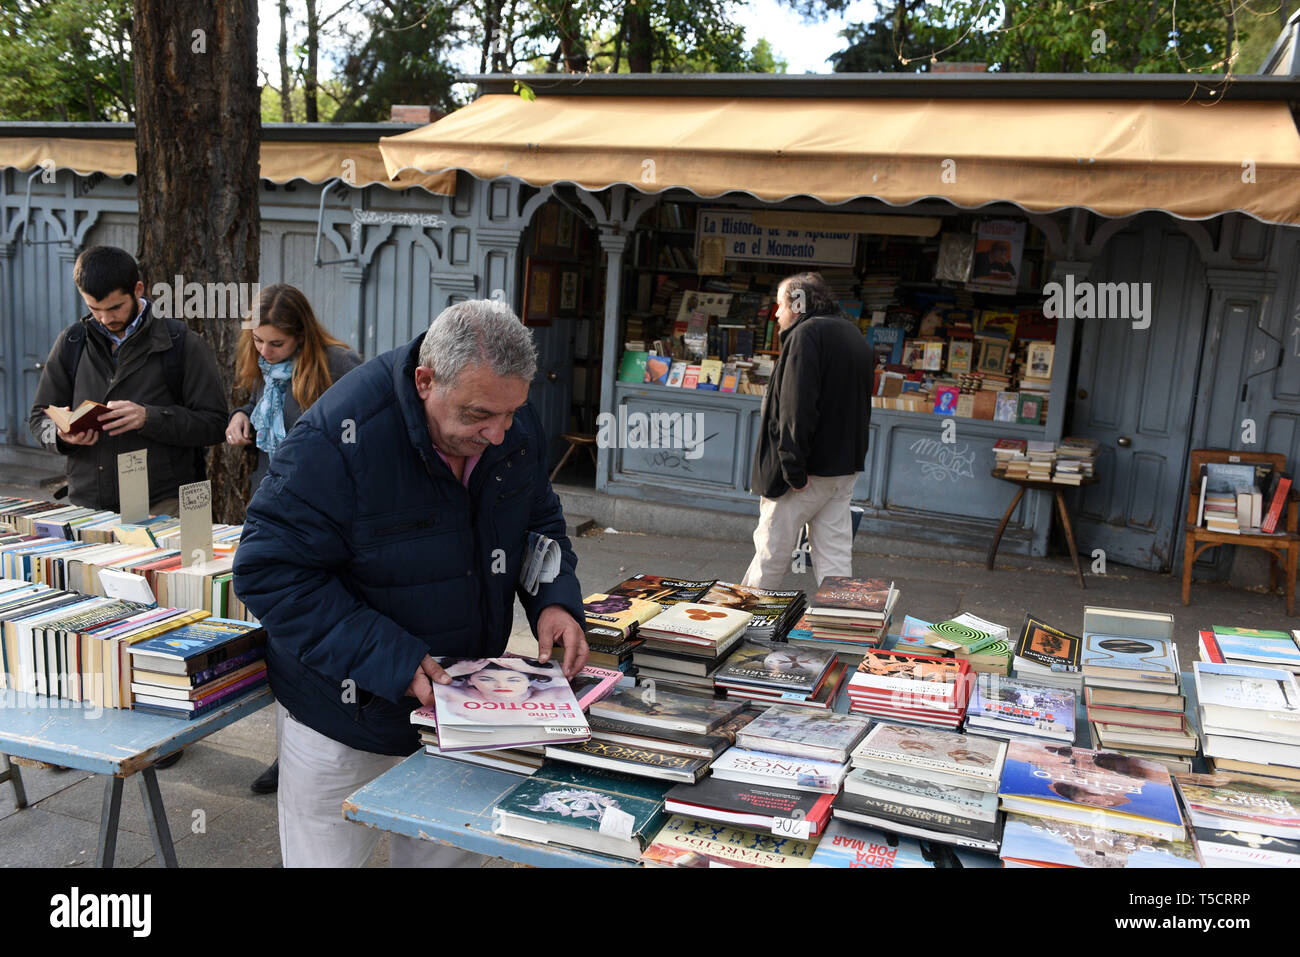 Madrid, Madrid, Spain. 23rd Apr, 2019. A man is seen reading a book at the Cuesta de Moyano street in Madrid during the World Book Day.World Book Day is celebrated all over the world. The specific date was chosen by the Spanish booksellers to honour the author Miguel de Cervantes, who died on April 22nd in 1616. Credit: John Milner/SOPA Images/ZUMA Wire/Alamy Live News Stock Photo